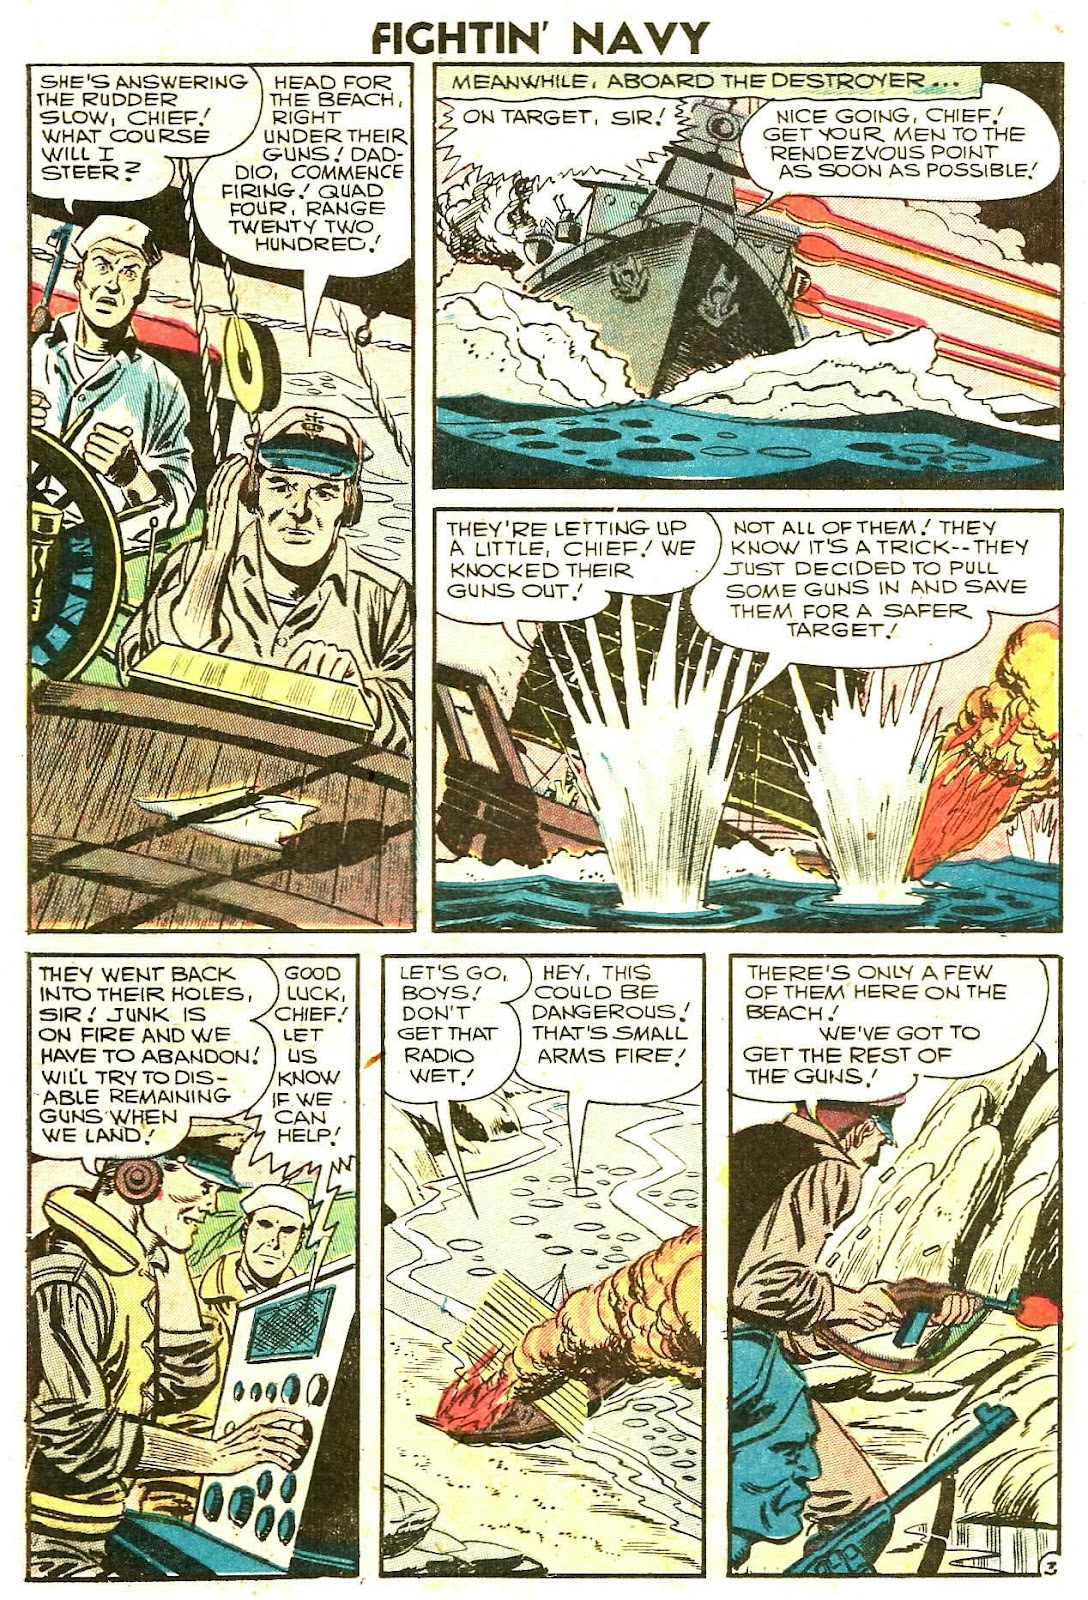 Read online Fightin' Navy comic -  Issue #78 - 20